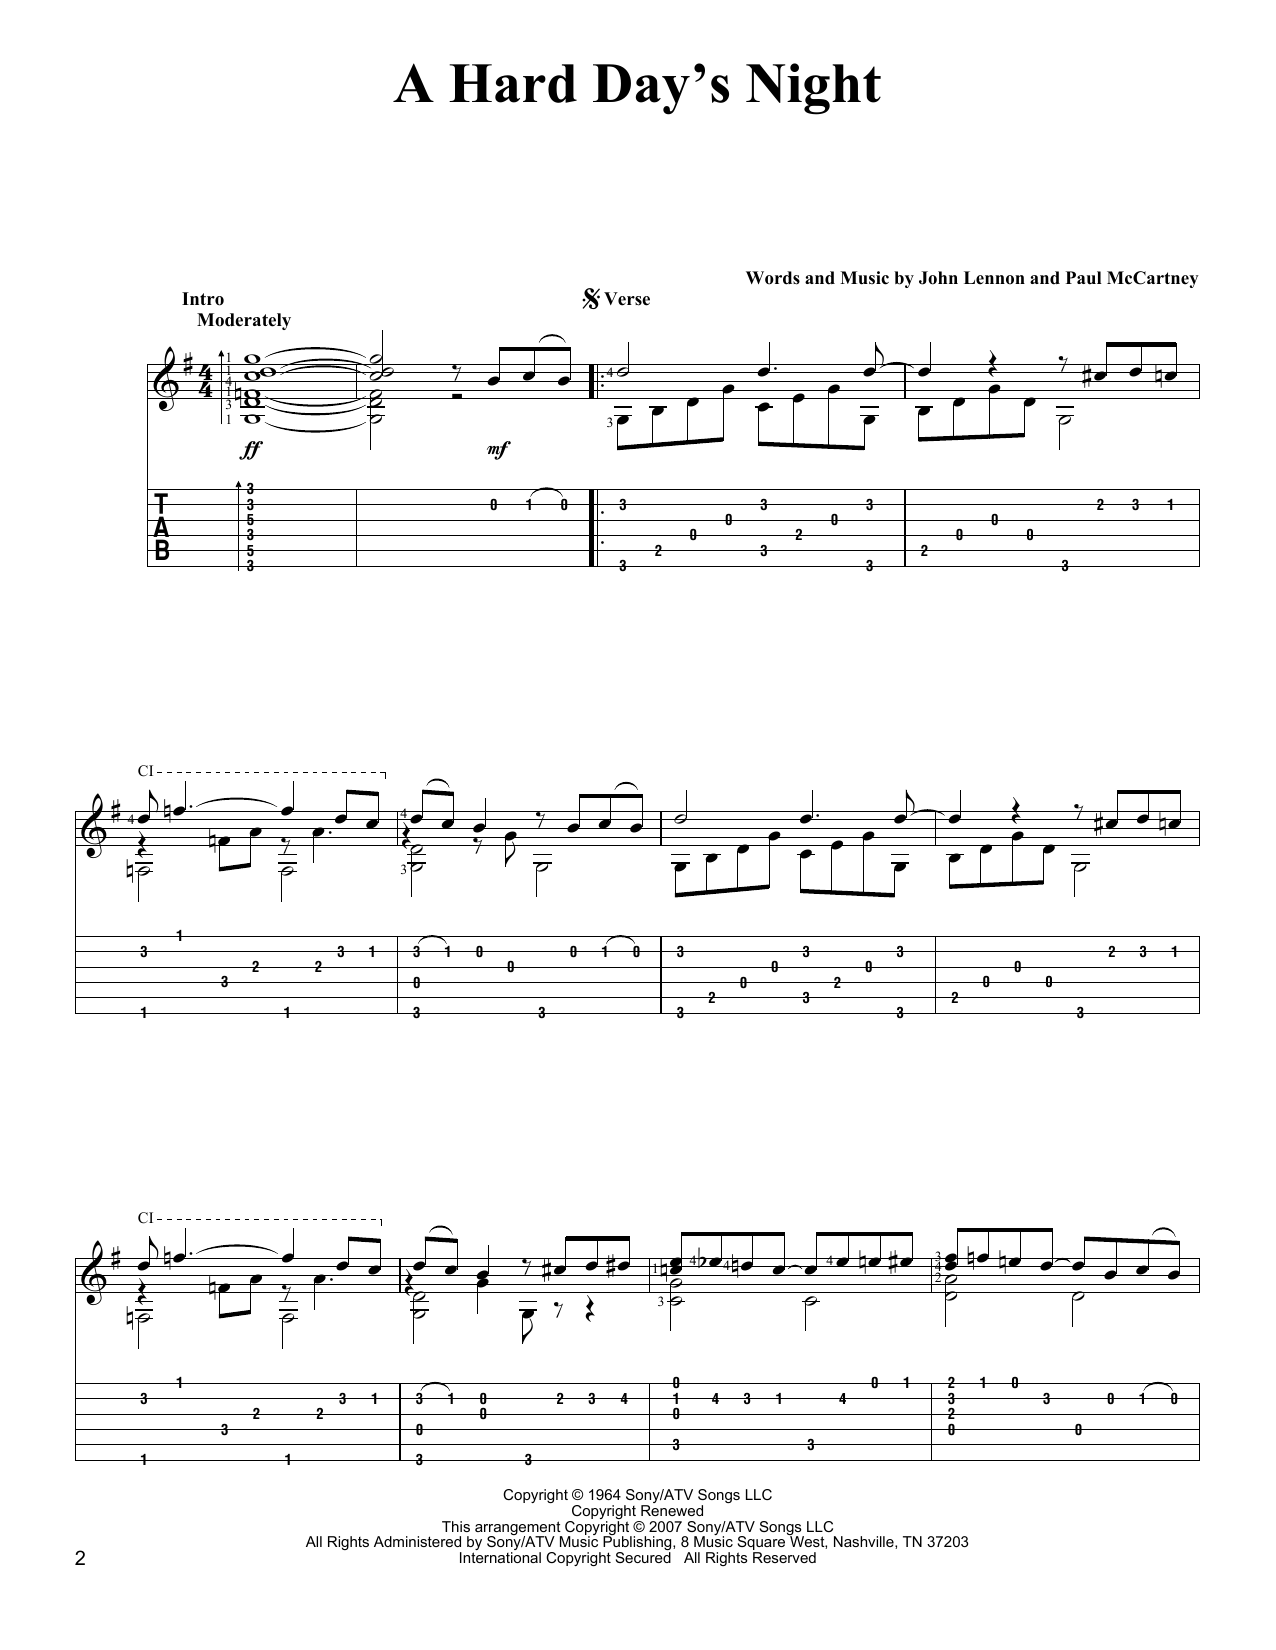 A Hard Day's Night sheet music for guitar solo by Paul McCartney